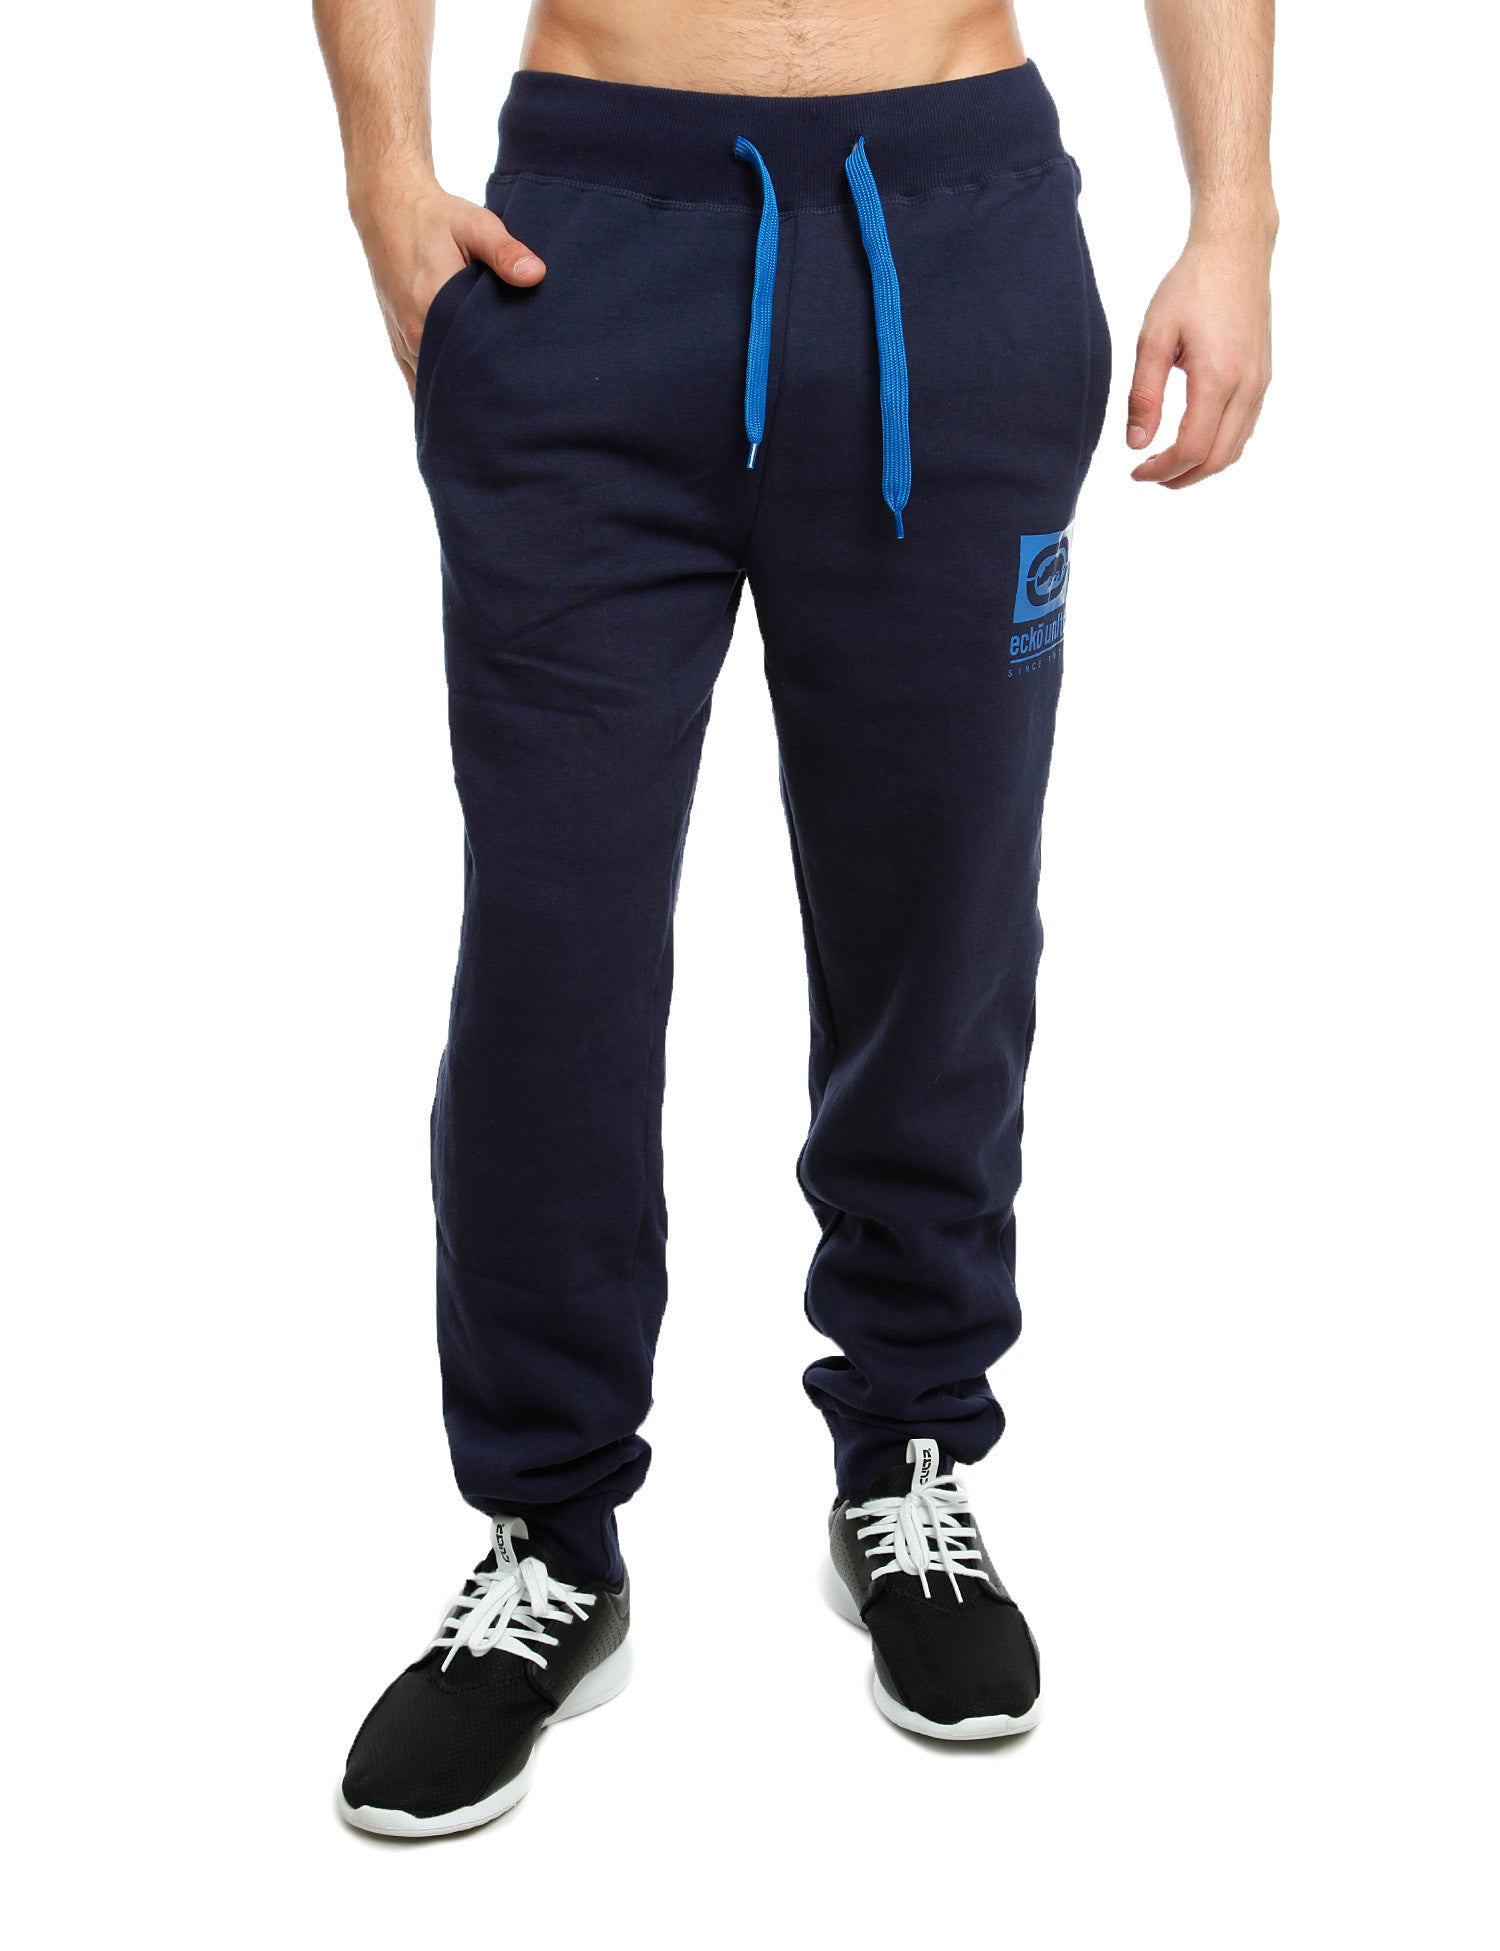 Image of Ecko Sweatpants Barking Blue